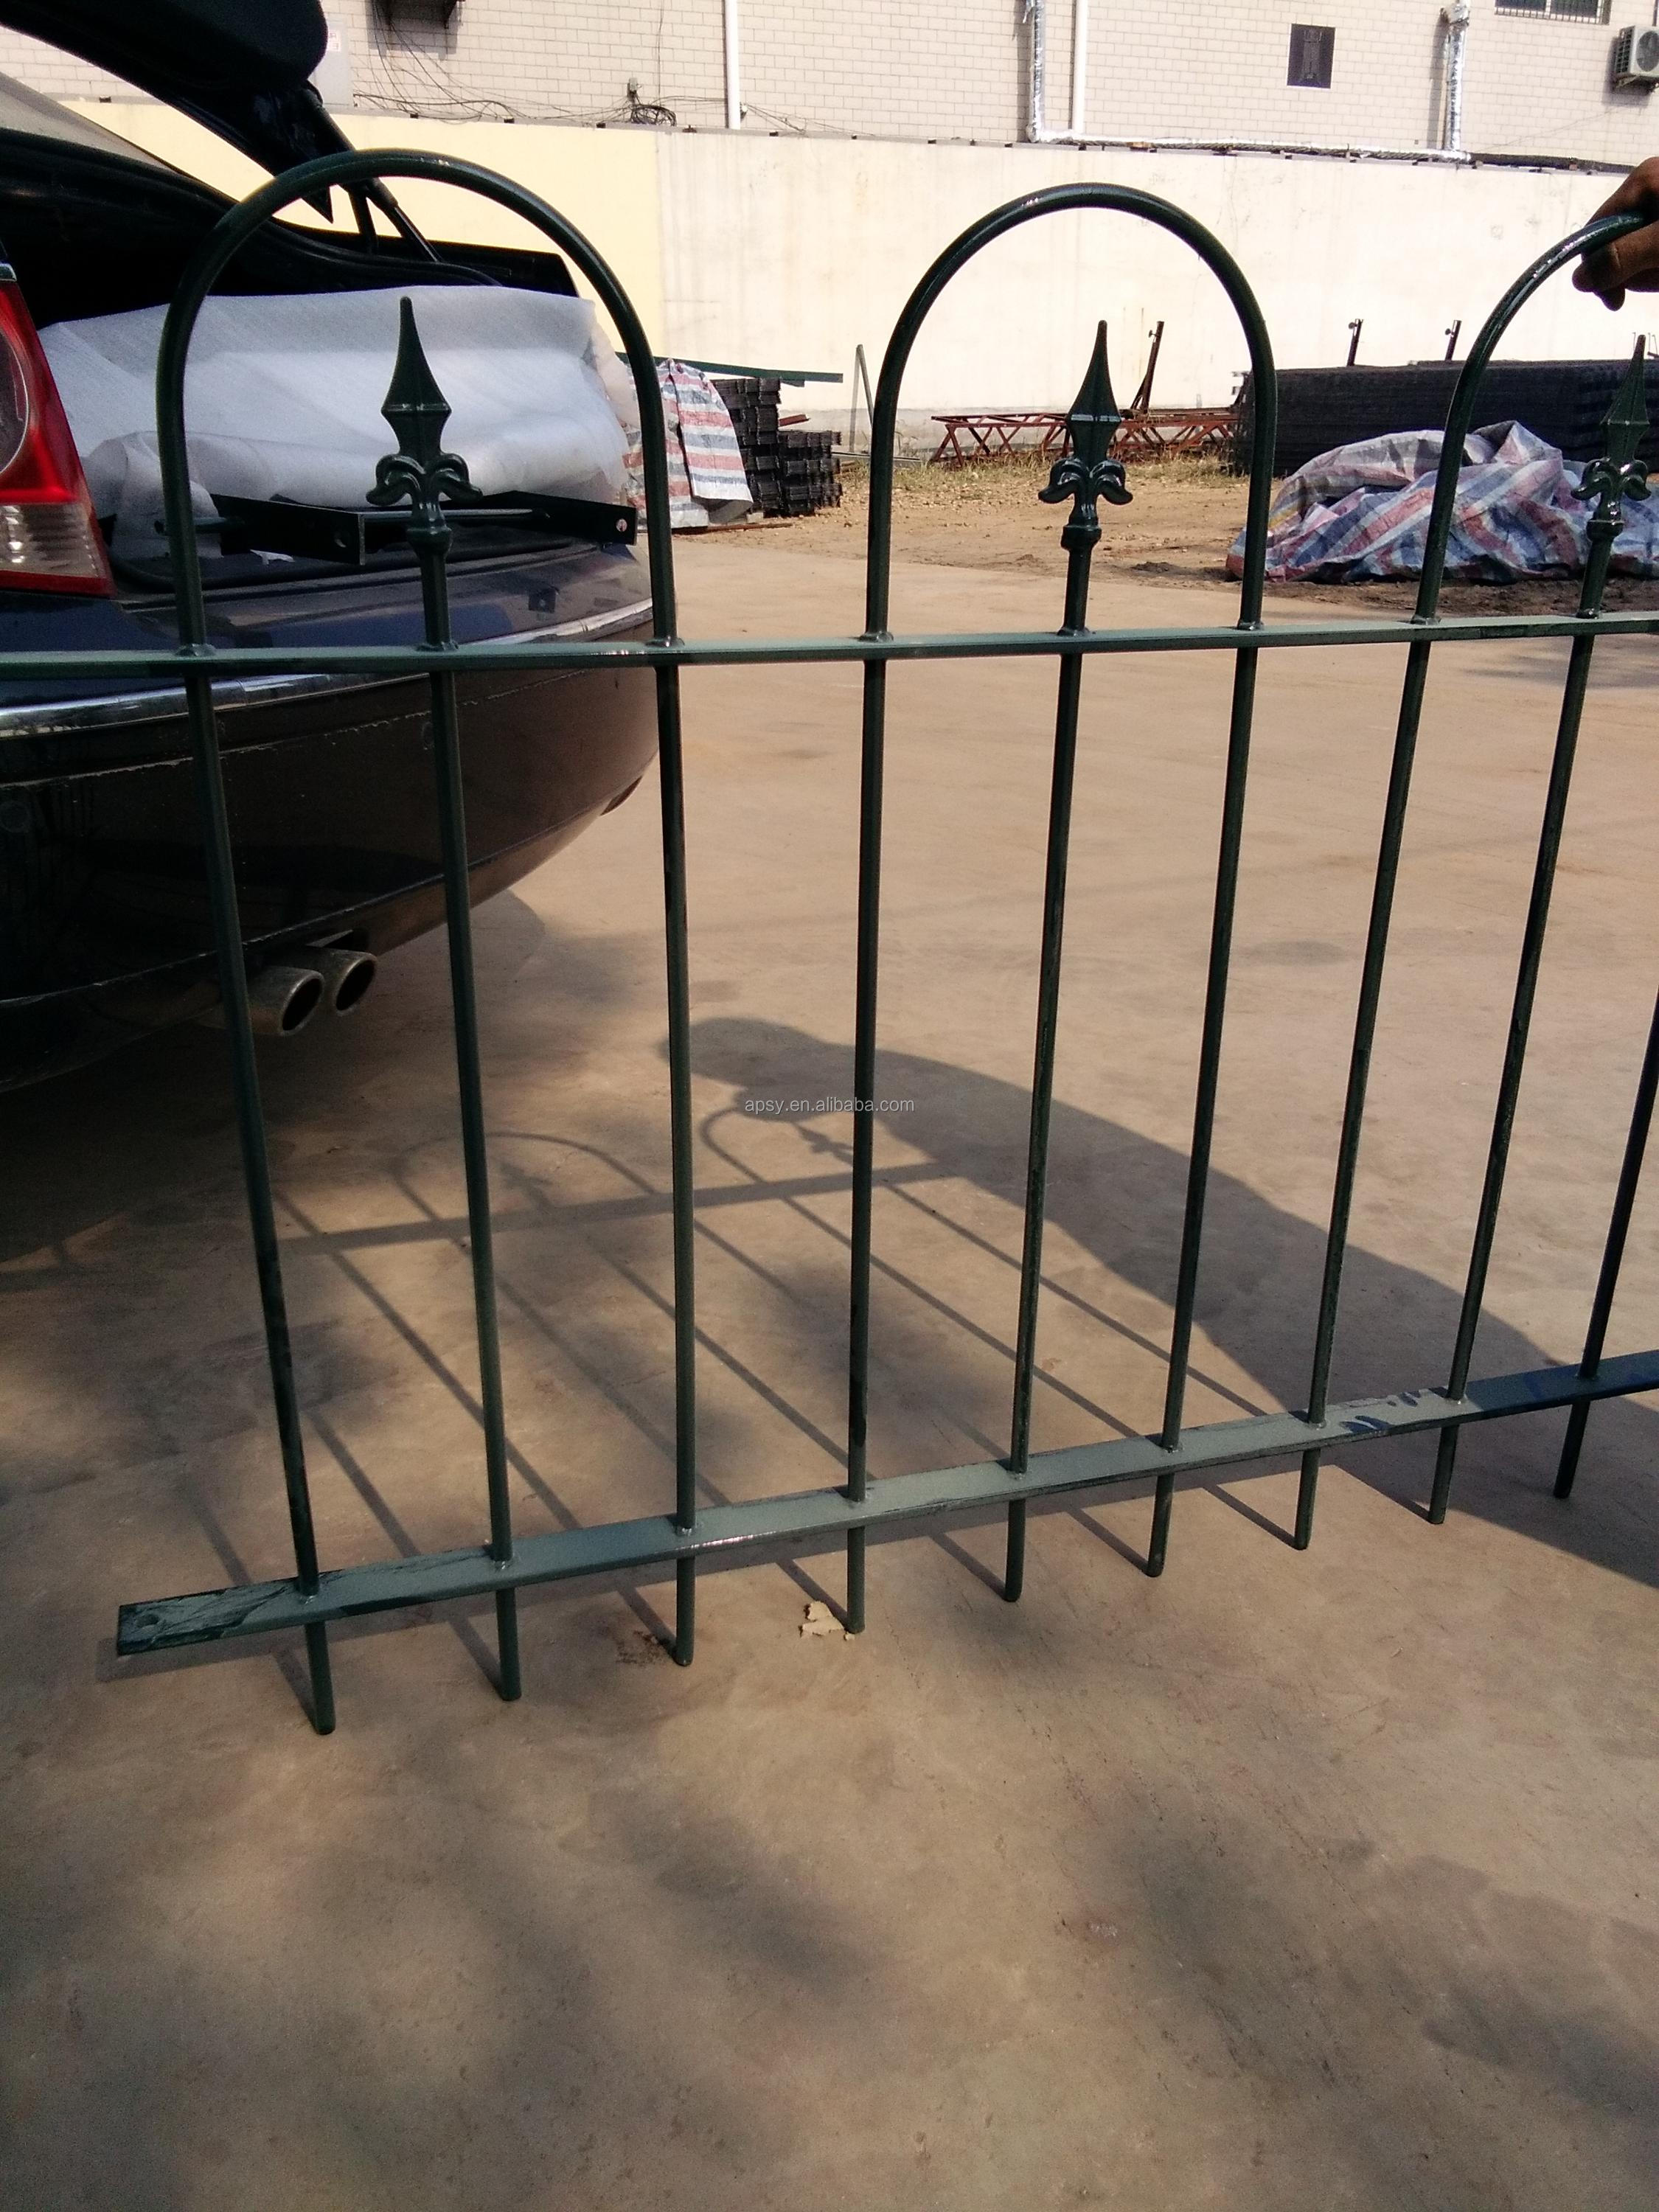 60 cm steel palisade fence with hoop top in various colors